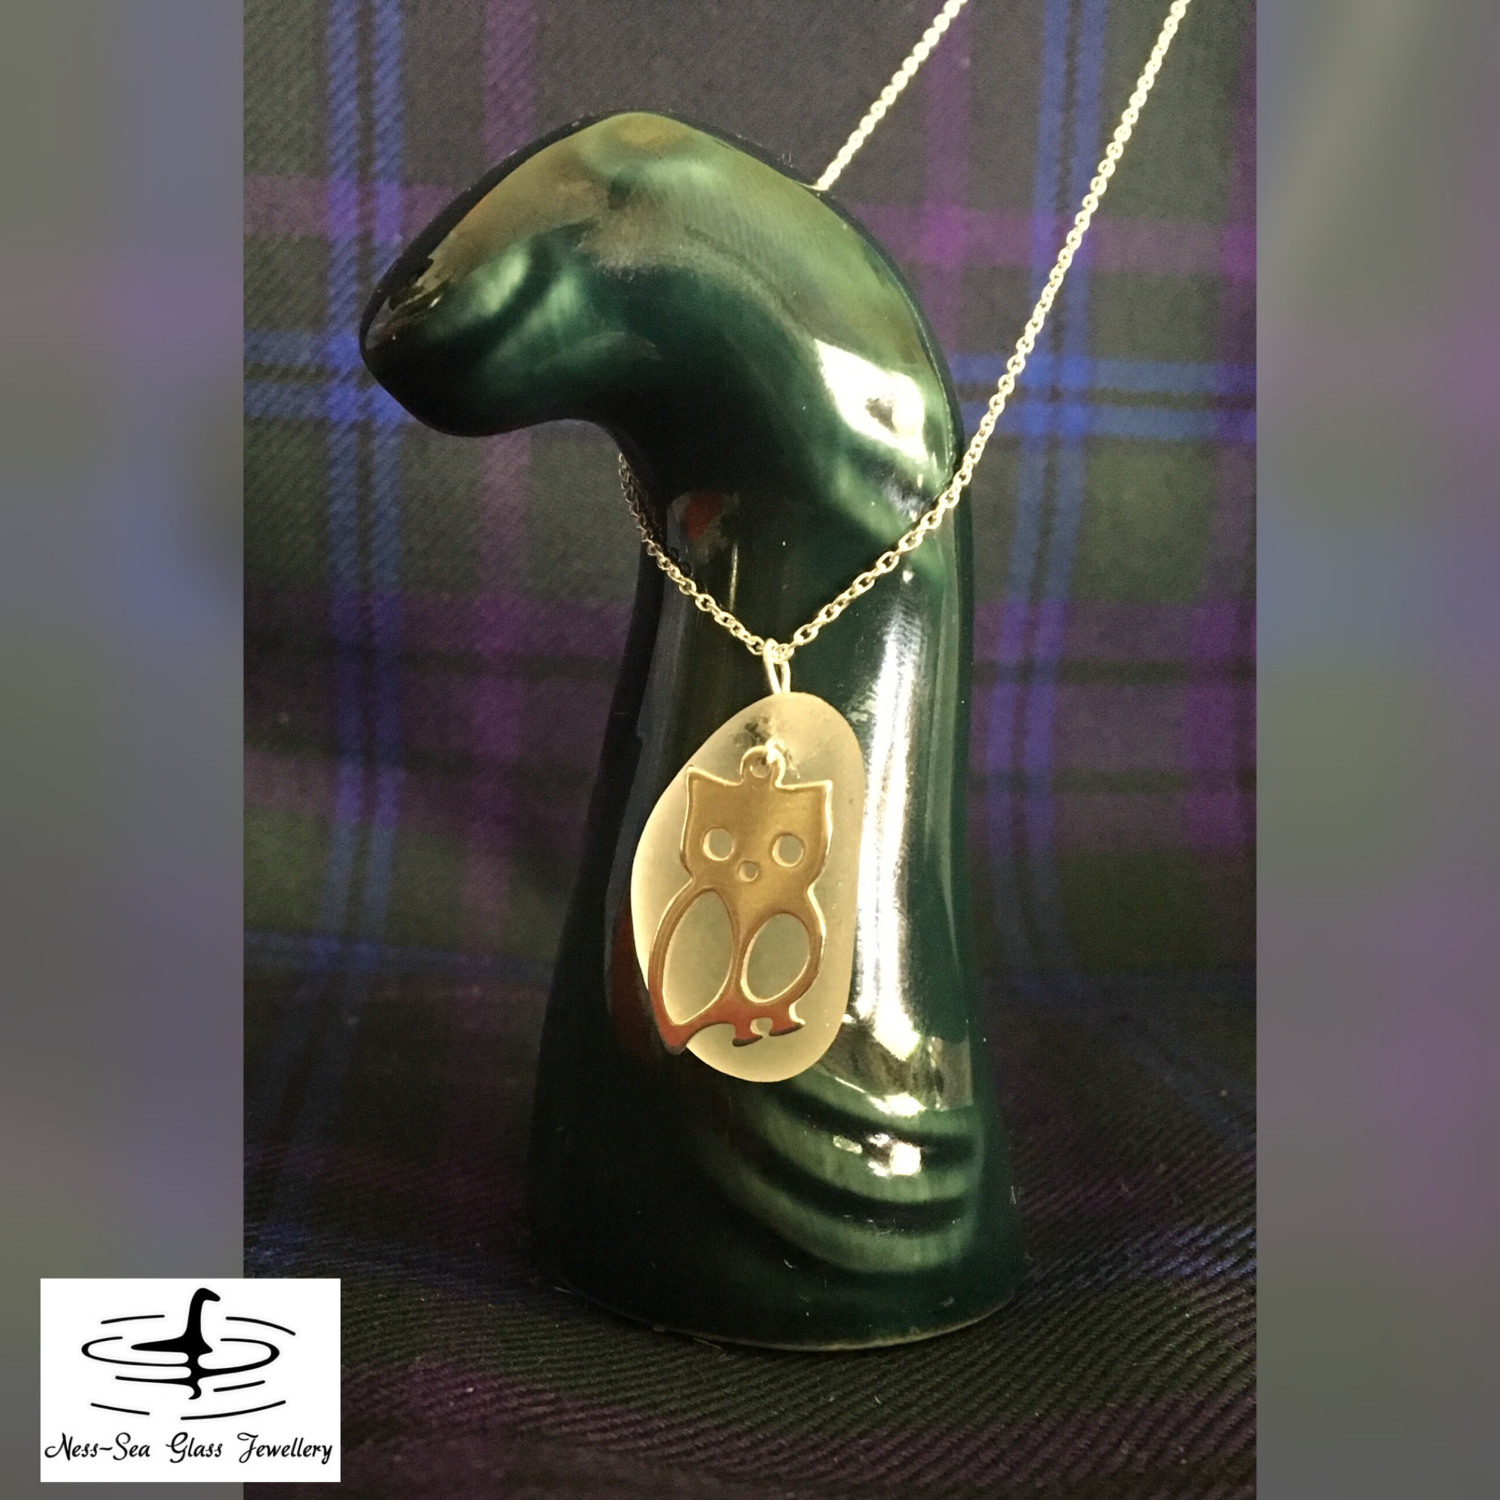 Clear Loch Ness Sea Glass Necklace with Sterling Silver Owl design and Sterling Silver Chain